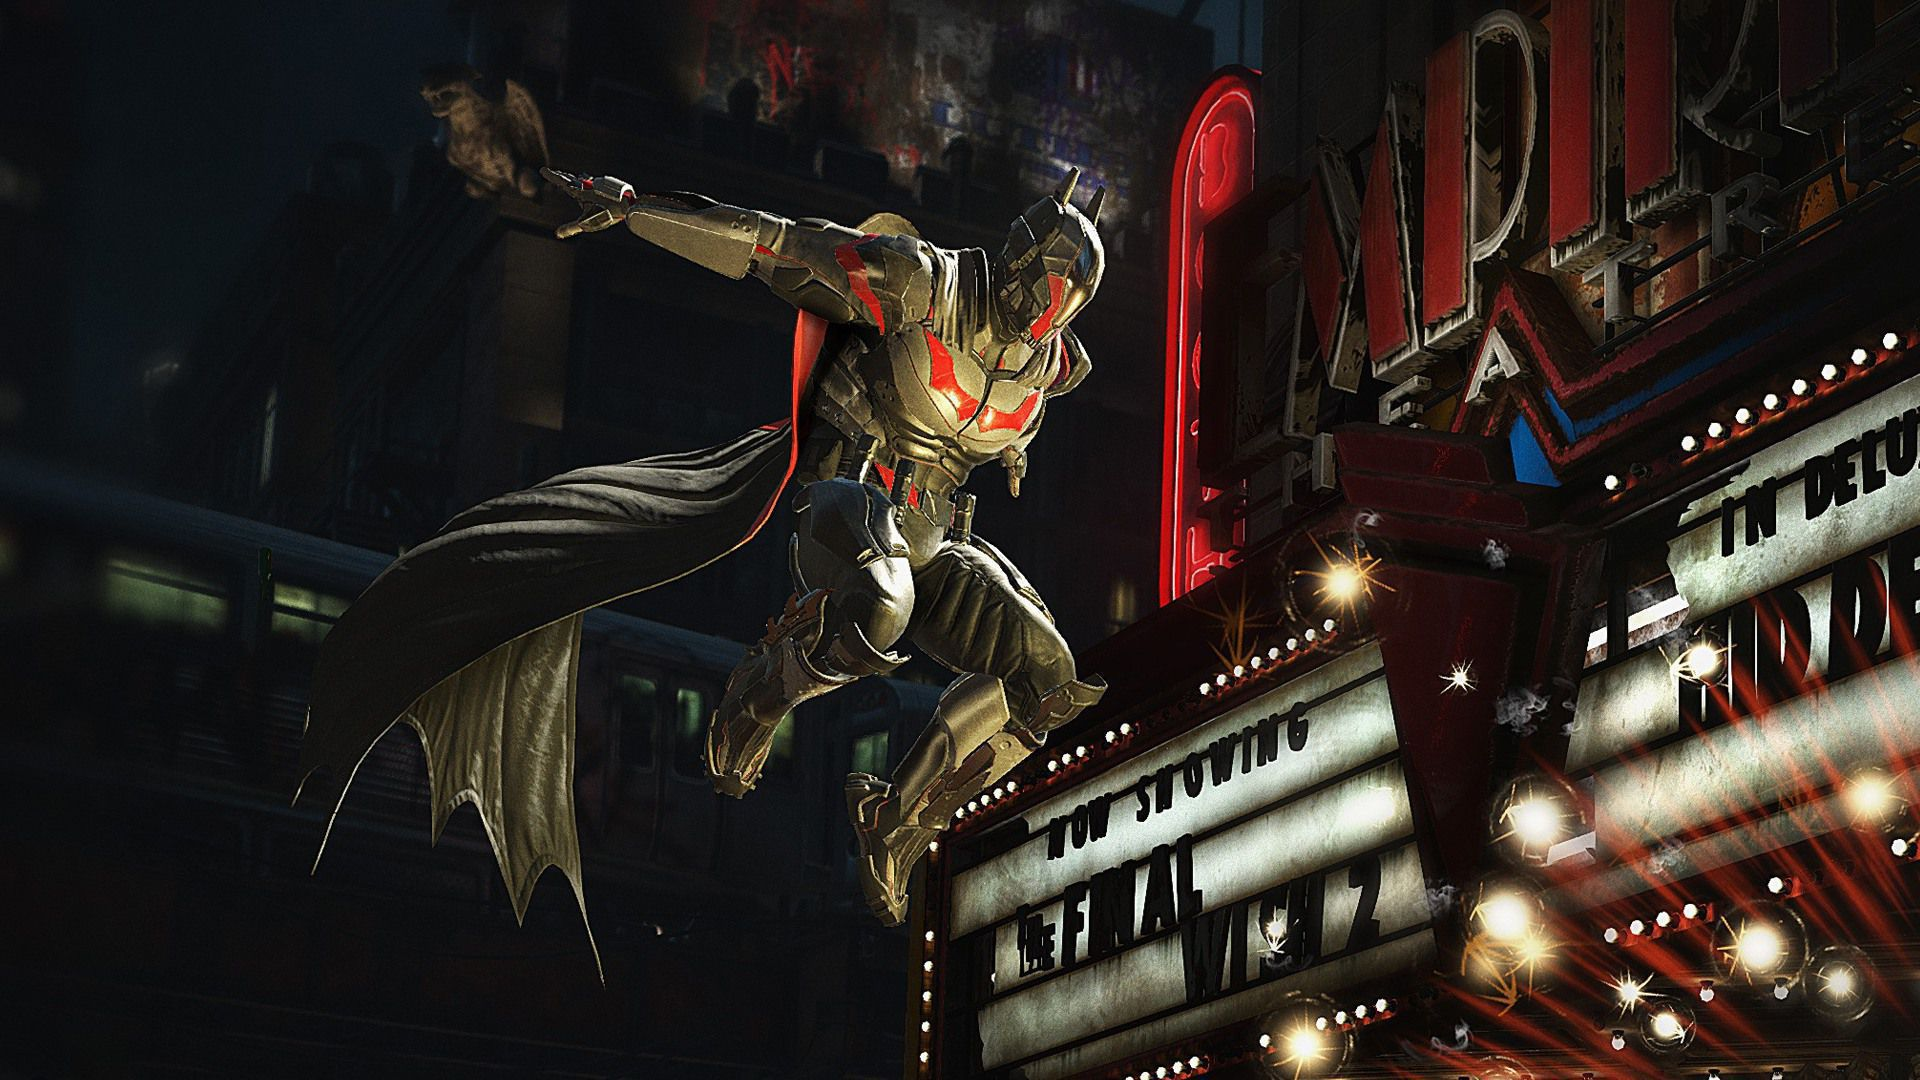 Injustice 2 Wallpapers Images Photos Pictures Backgrounds